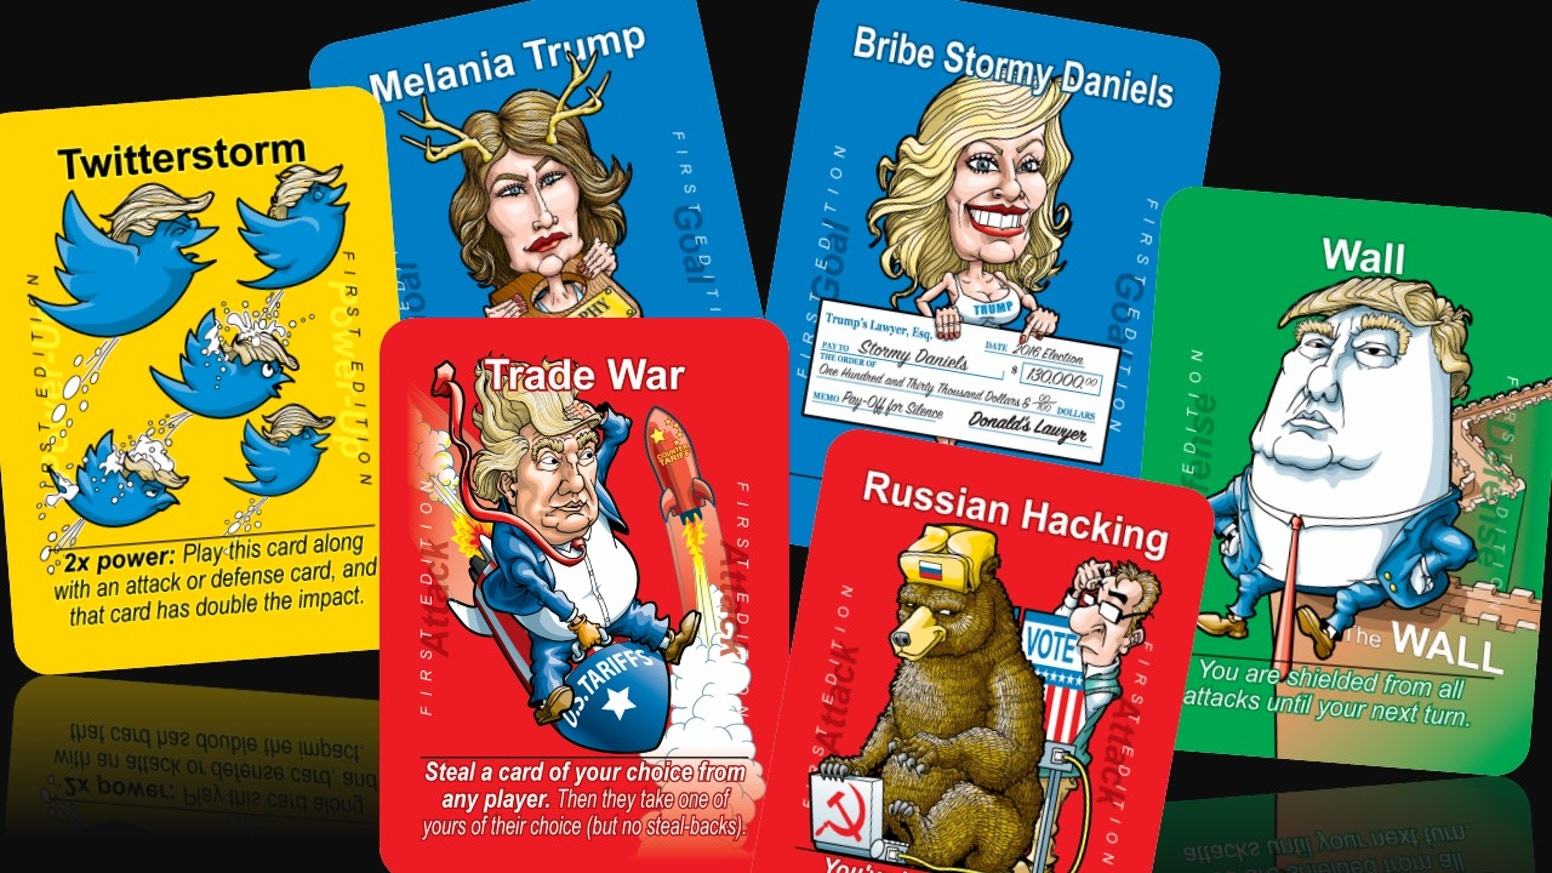 A hilarious graphic card game for the era of American insanity. Strategic, informative, and fun.